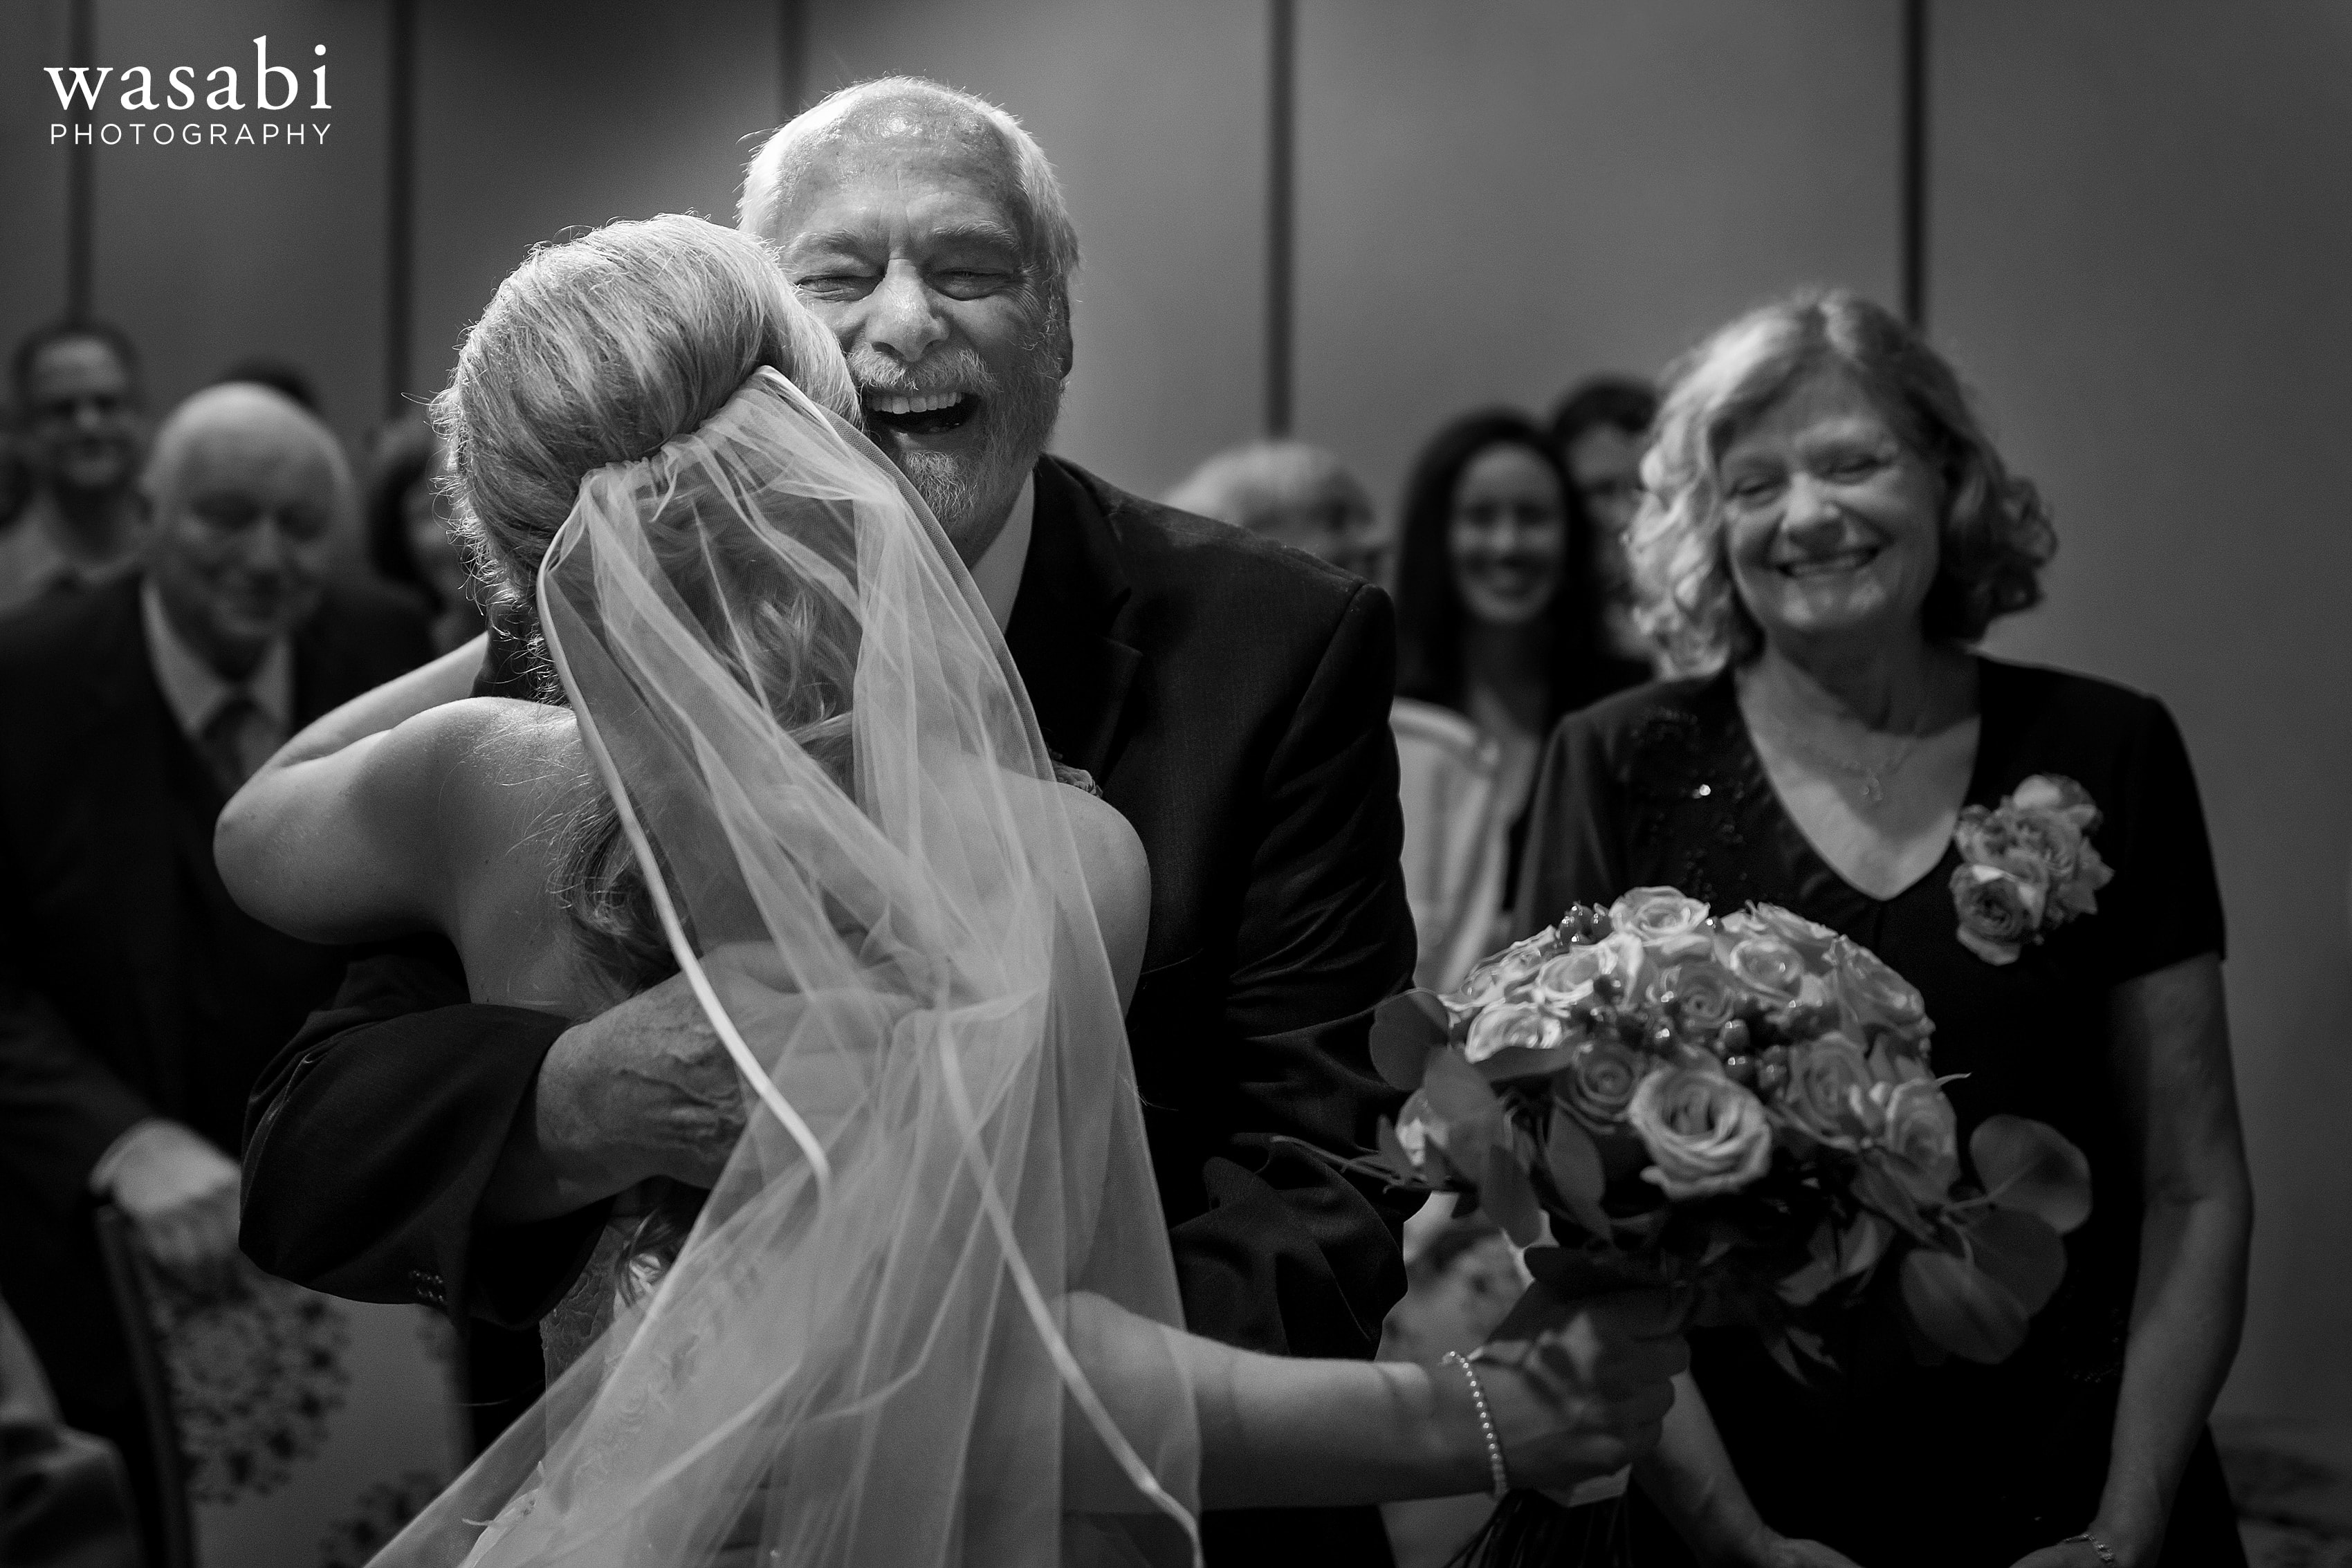 Bride hugs her father after walking down the aisle during their wedding at Eberhard Center in downtown Grand Rapids